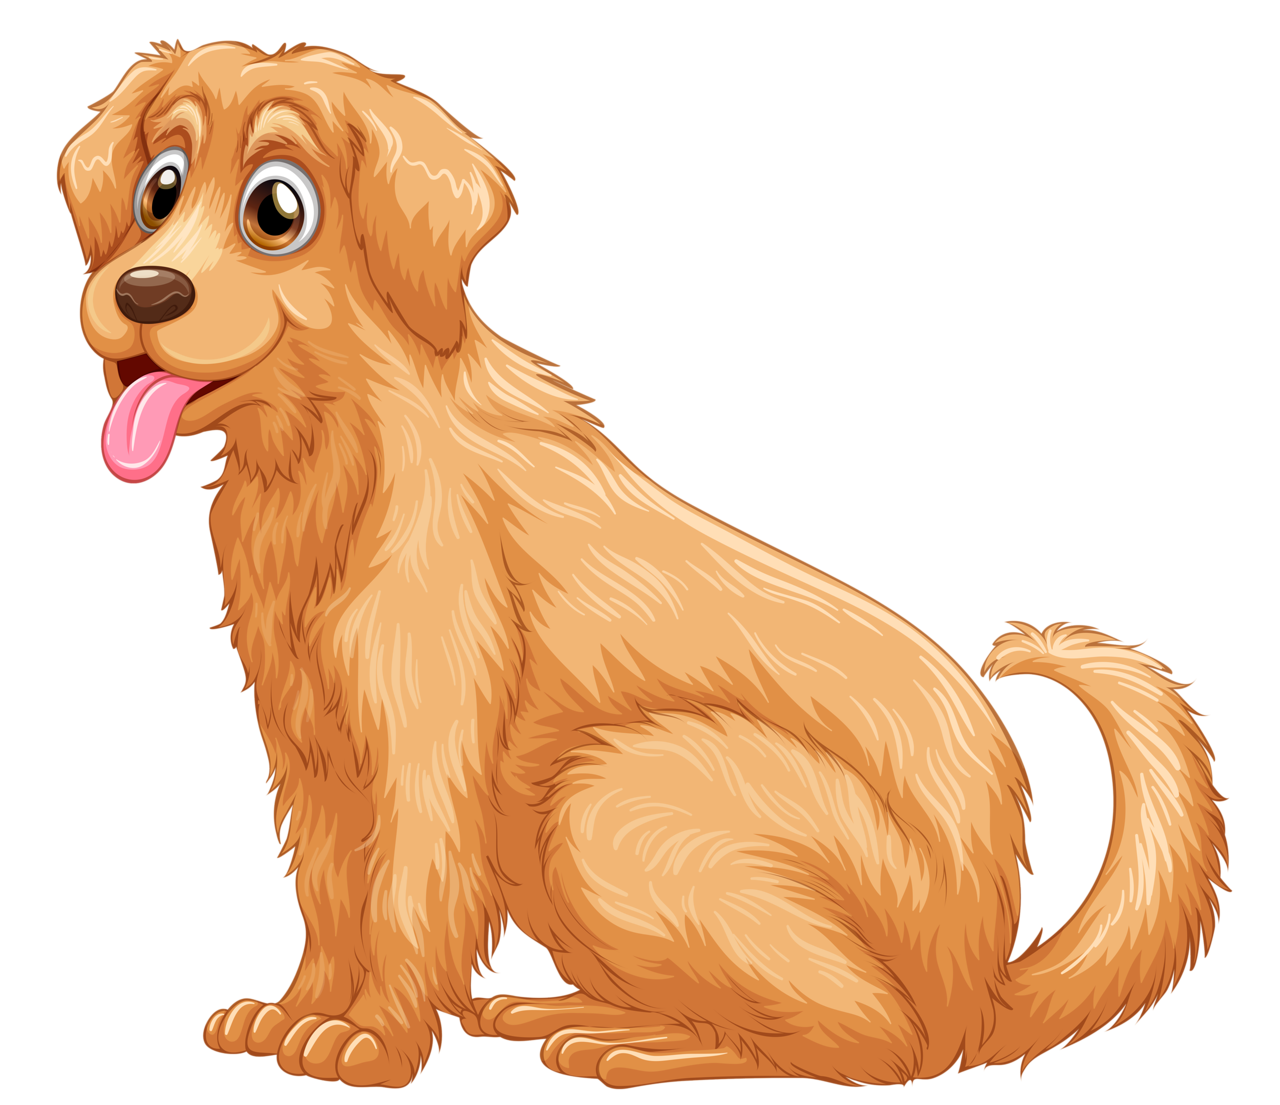 Golden retriver clipart png Golden Retriever Puppy Clip art - golden dogs word png download ... png